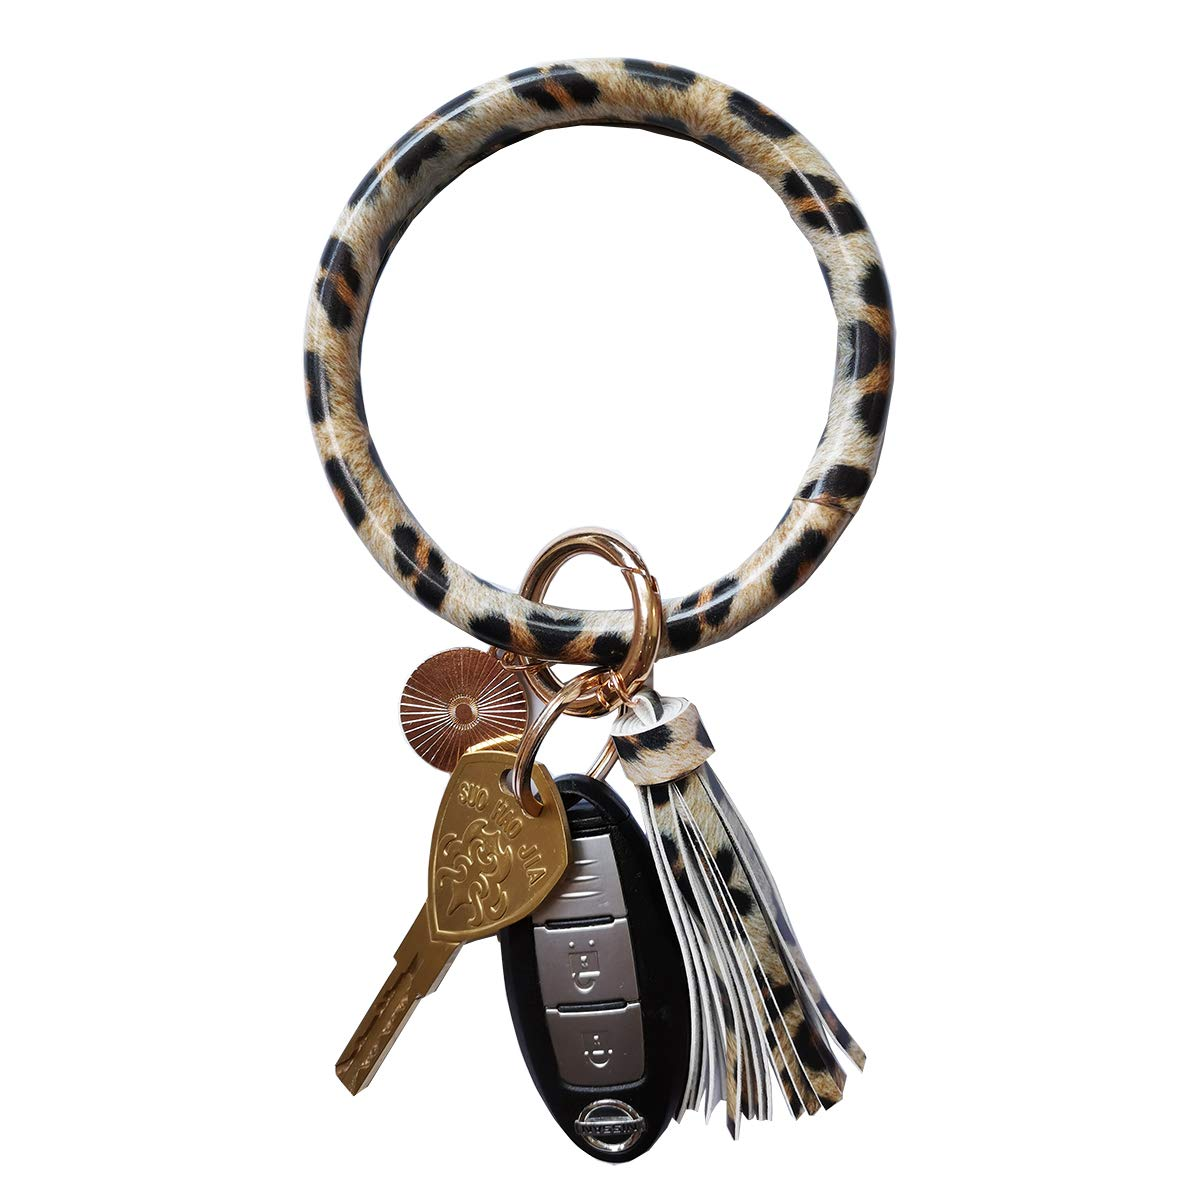 Tovly Wristlet Round Key Ring Chain Leather Oversized Bracelet Bangle Keychain Holder Tassel for Women Girl (Brown Leopard) by Tovly